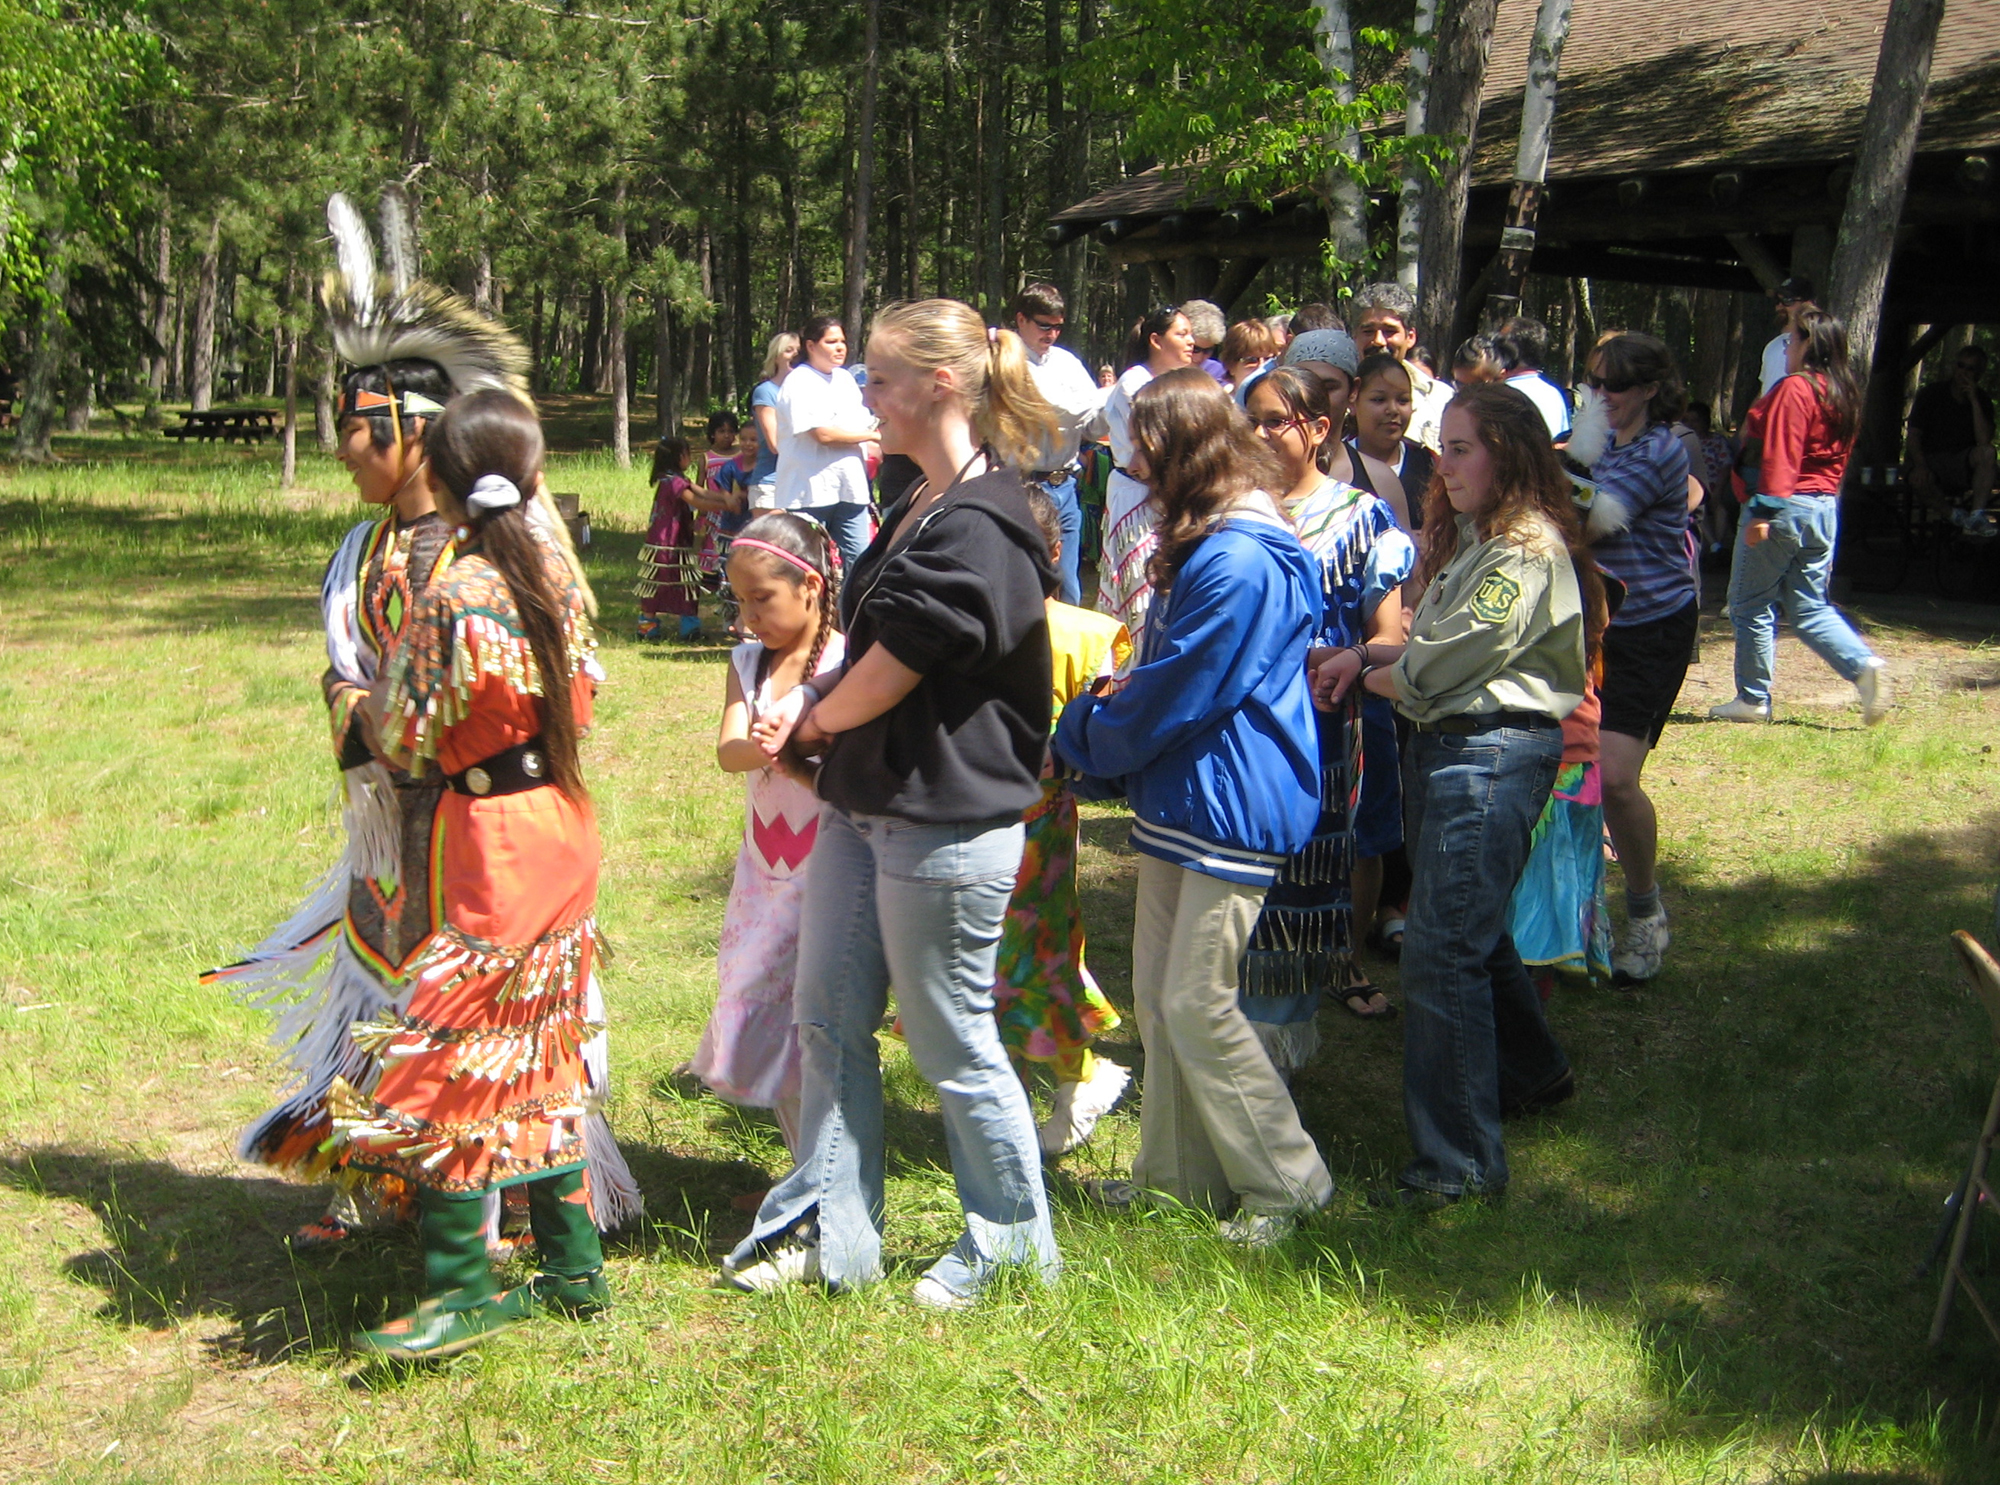 Chippewa National Forest employees and dancers together